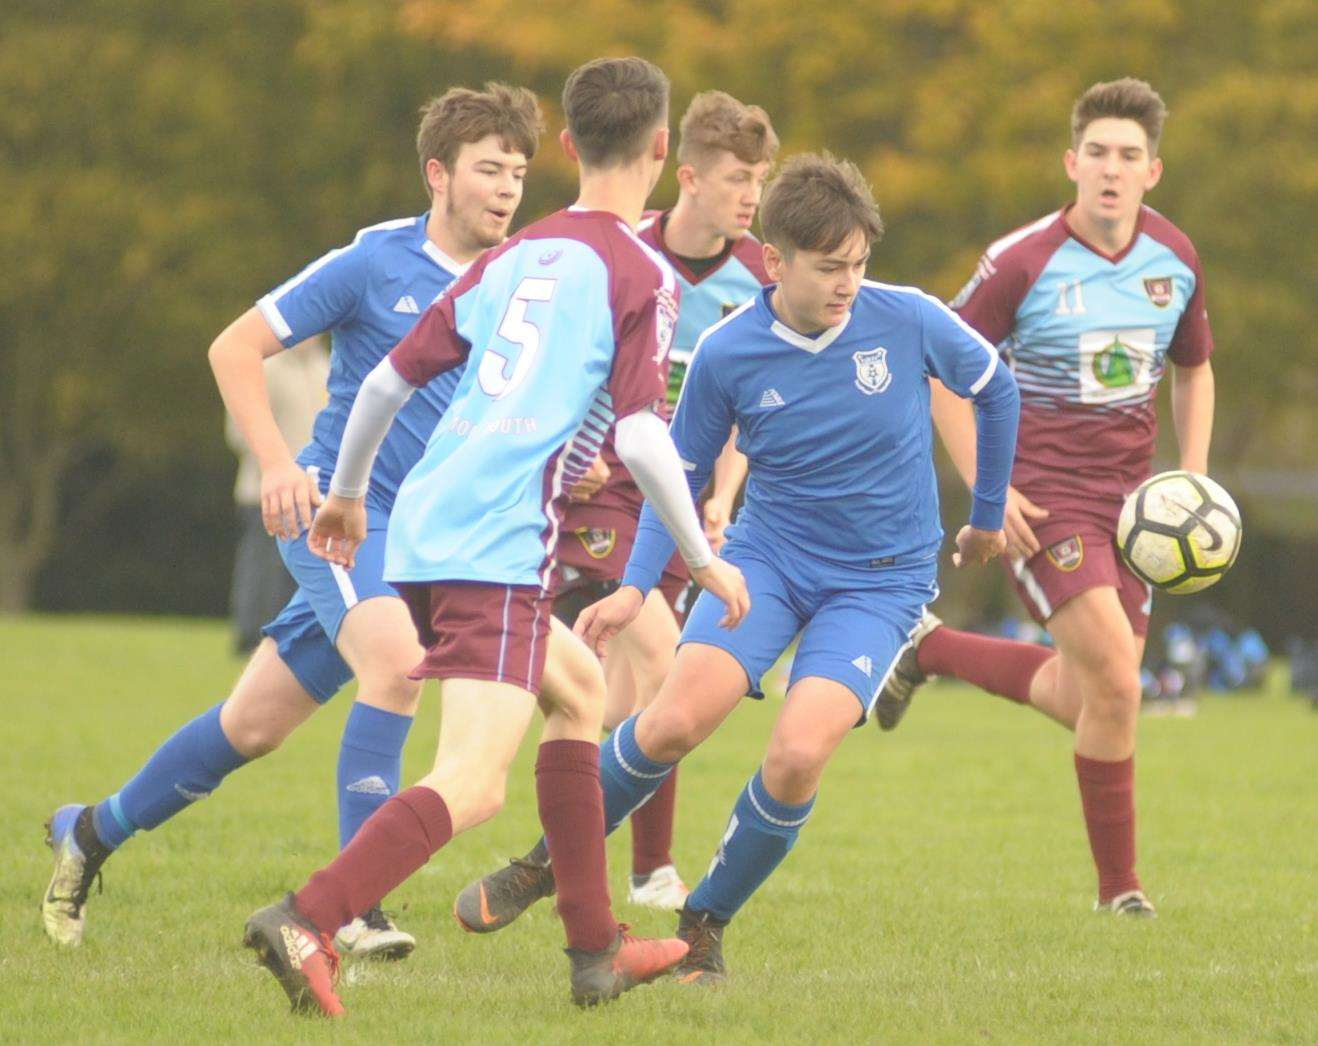 Wigmore Youth and New Road went head-to-head in Under-18 Division 2 Picture: Steve Crispe